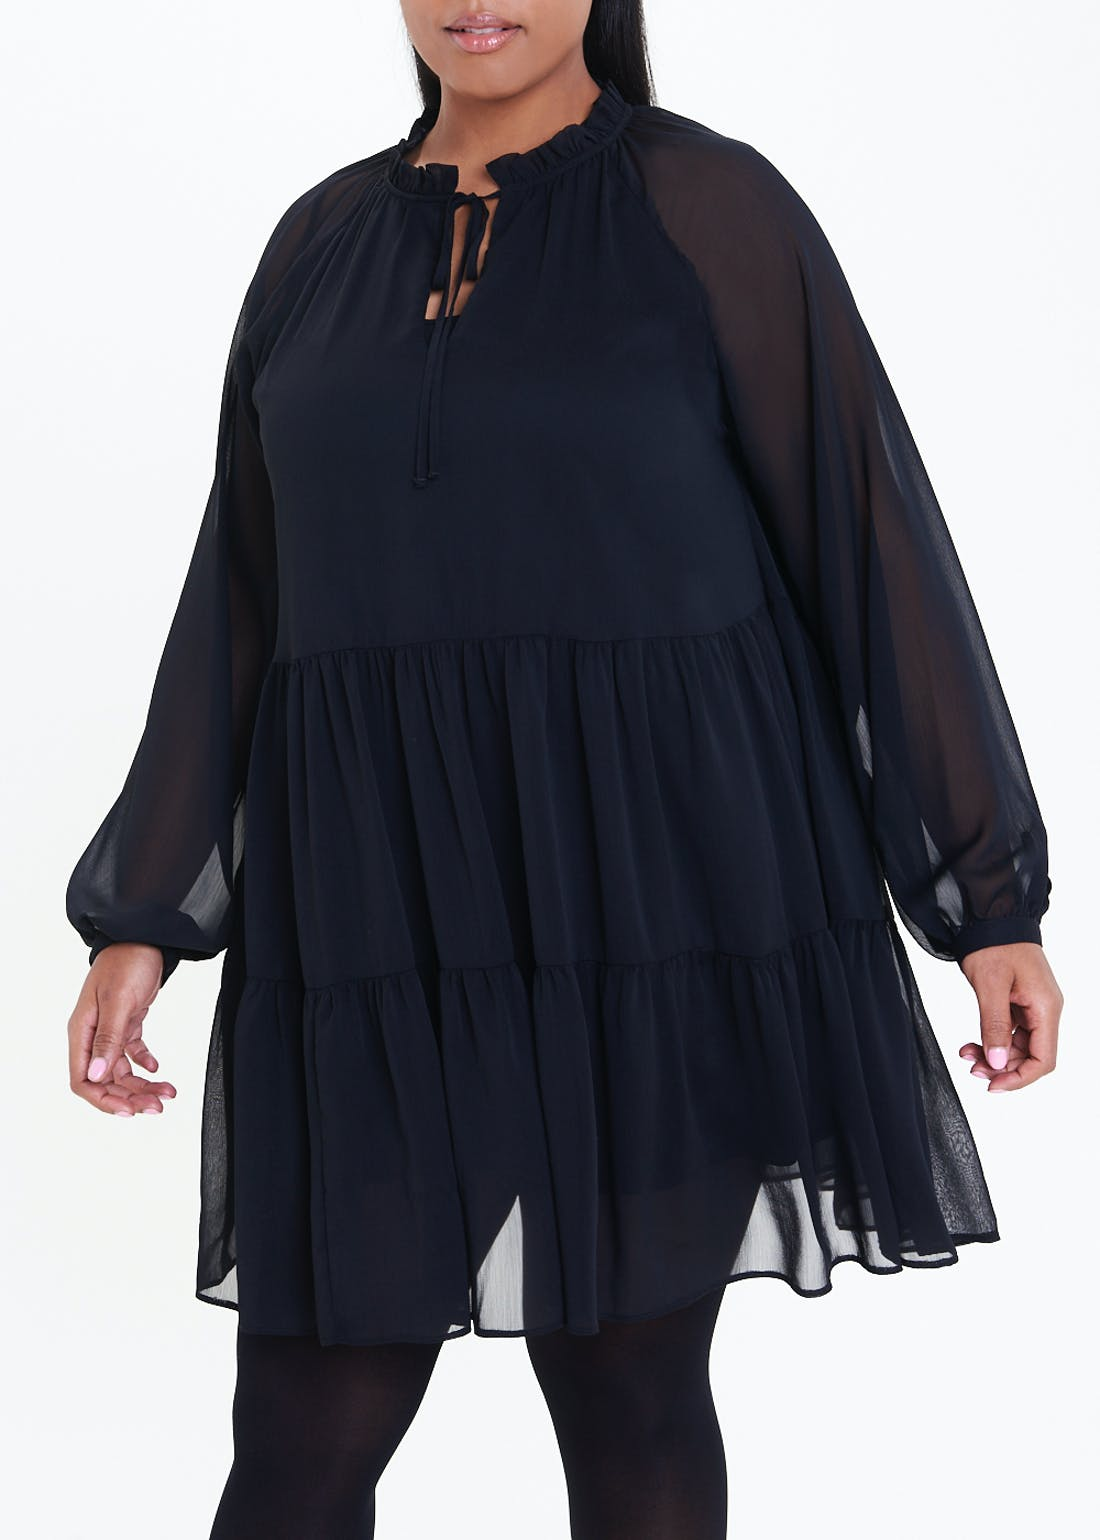 Papaya Curve Black Long Sleeve Chiffon Tunic Dress